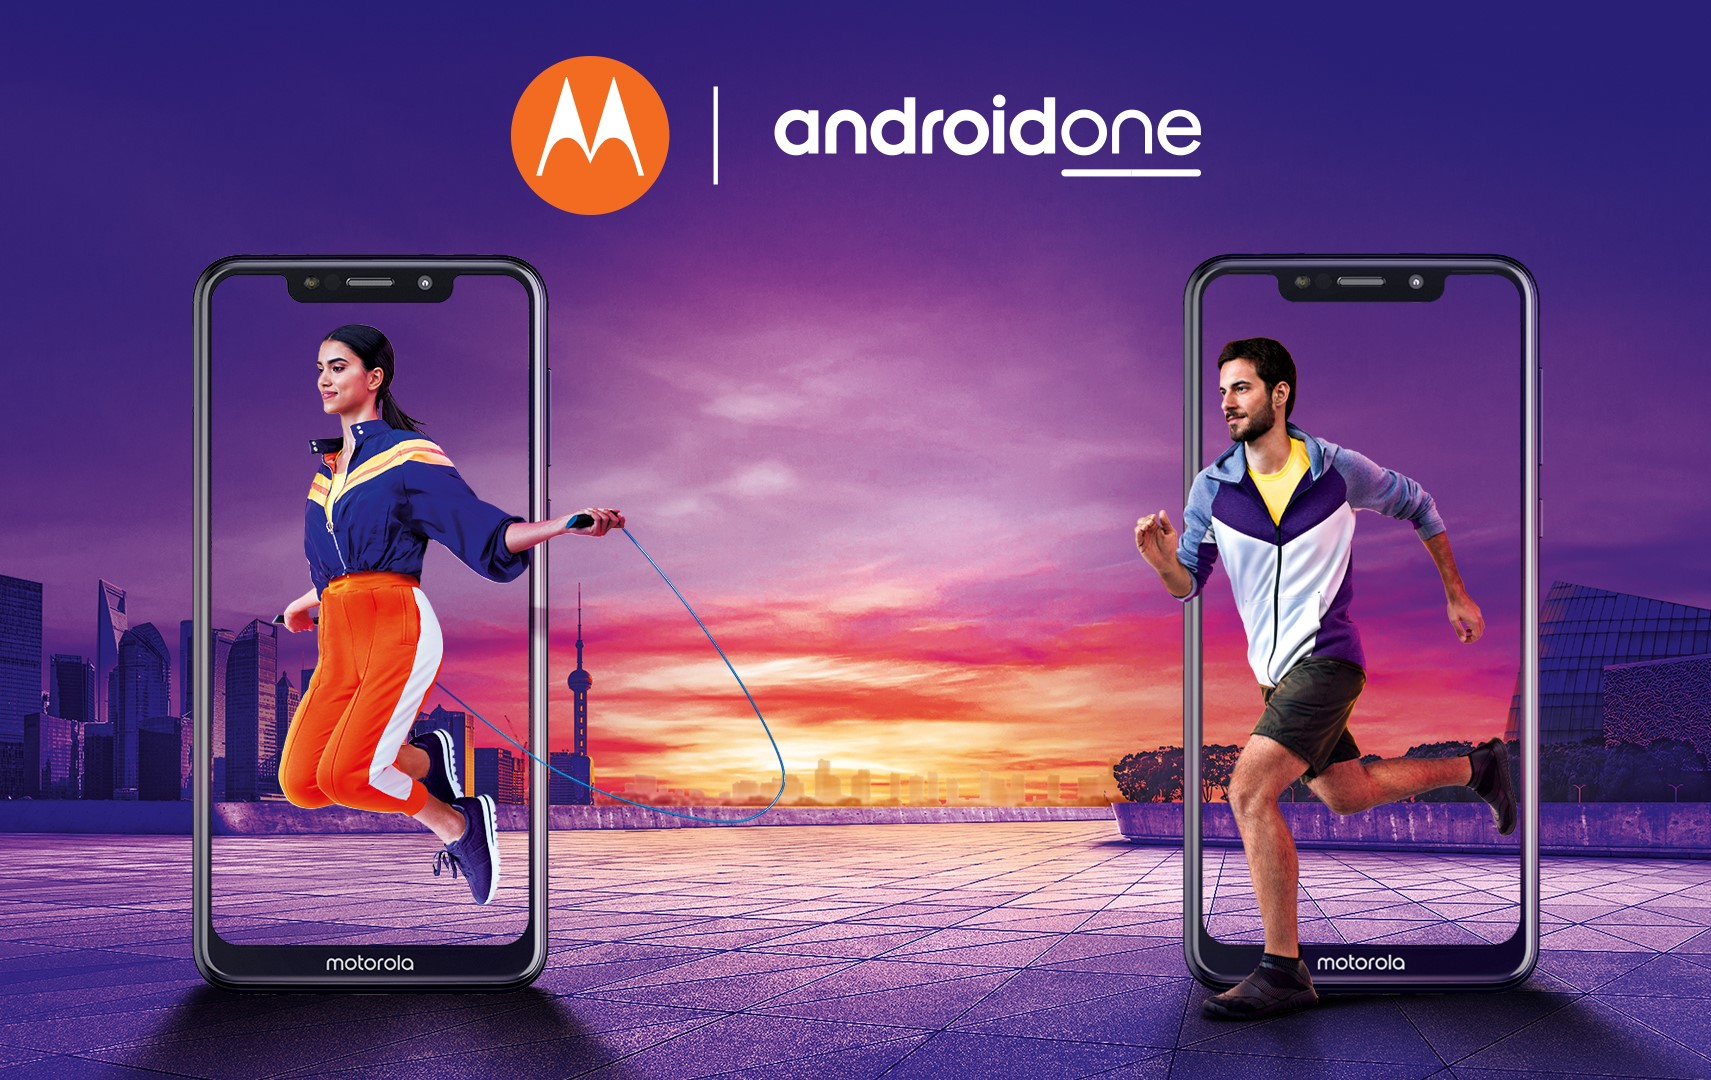 Kernel source codes for Motorola One Power and Moto Z3 Play are now available